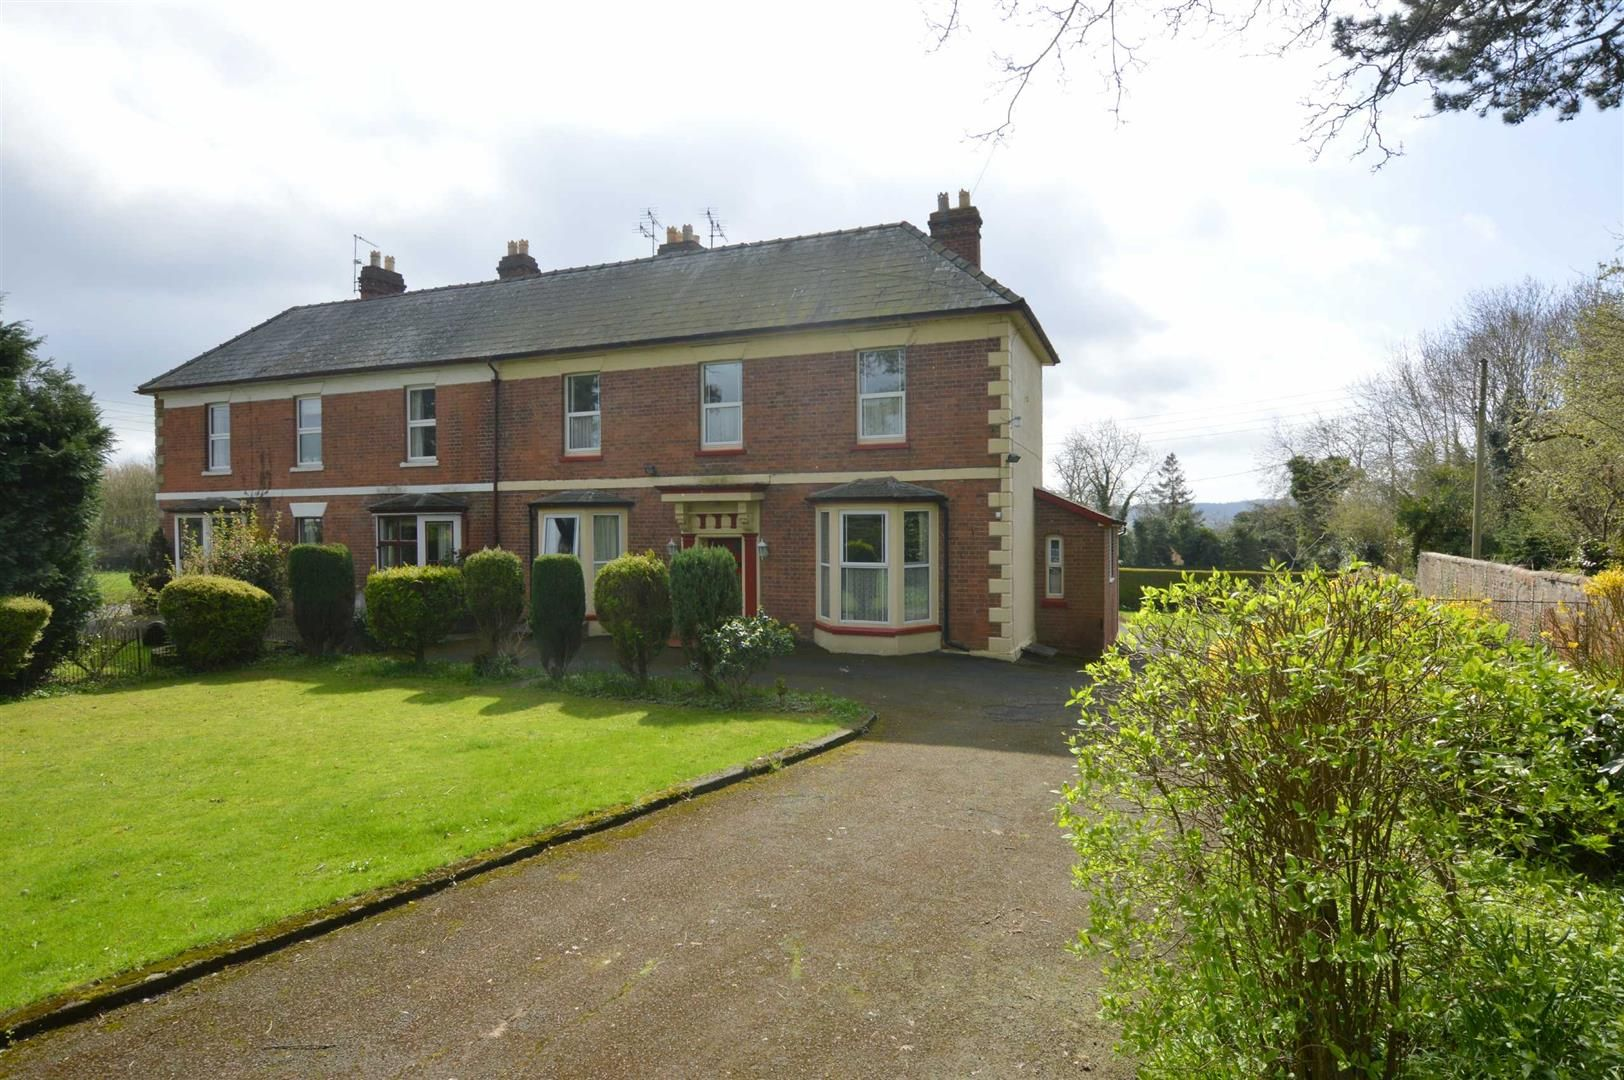 6 bed semi-detached for sale in Leominster - Property Image 1